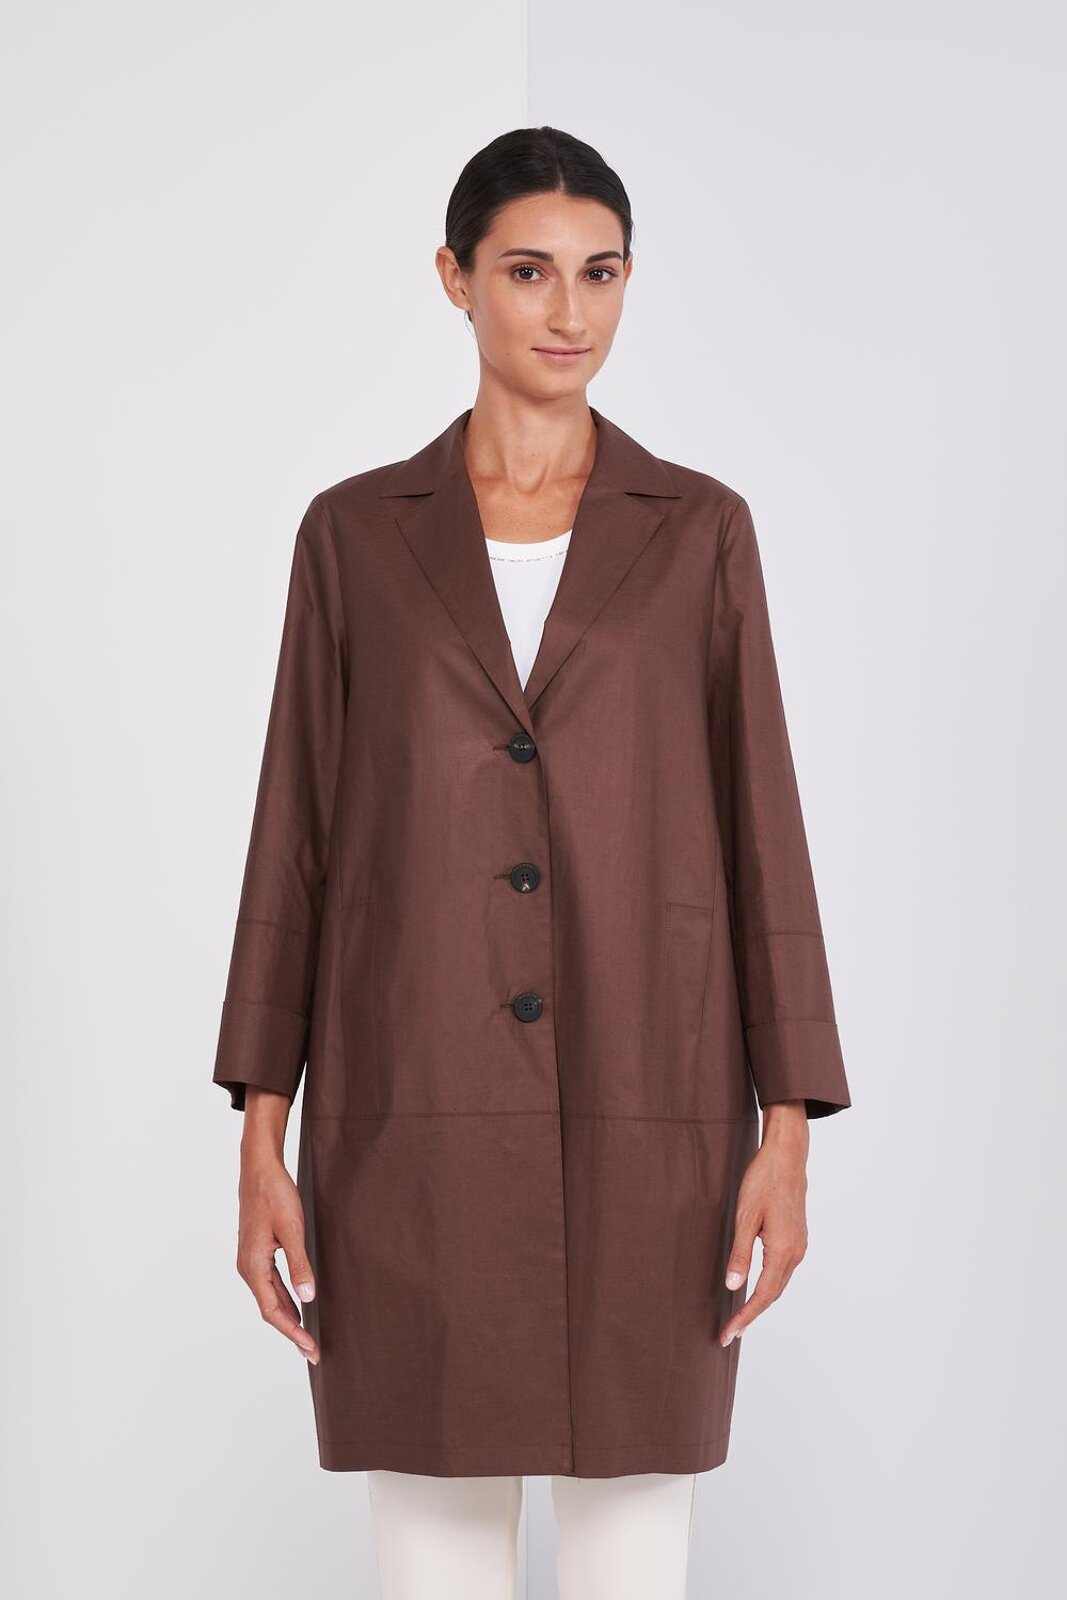 Light Duster Coat In Cotton And Canvas Effect Genuine Leather With Long Sleeves. Front closure with buttons, cuffed sleeves, two side pockets. Slightly 'Egg Shape', Regular Fit. - Peserico